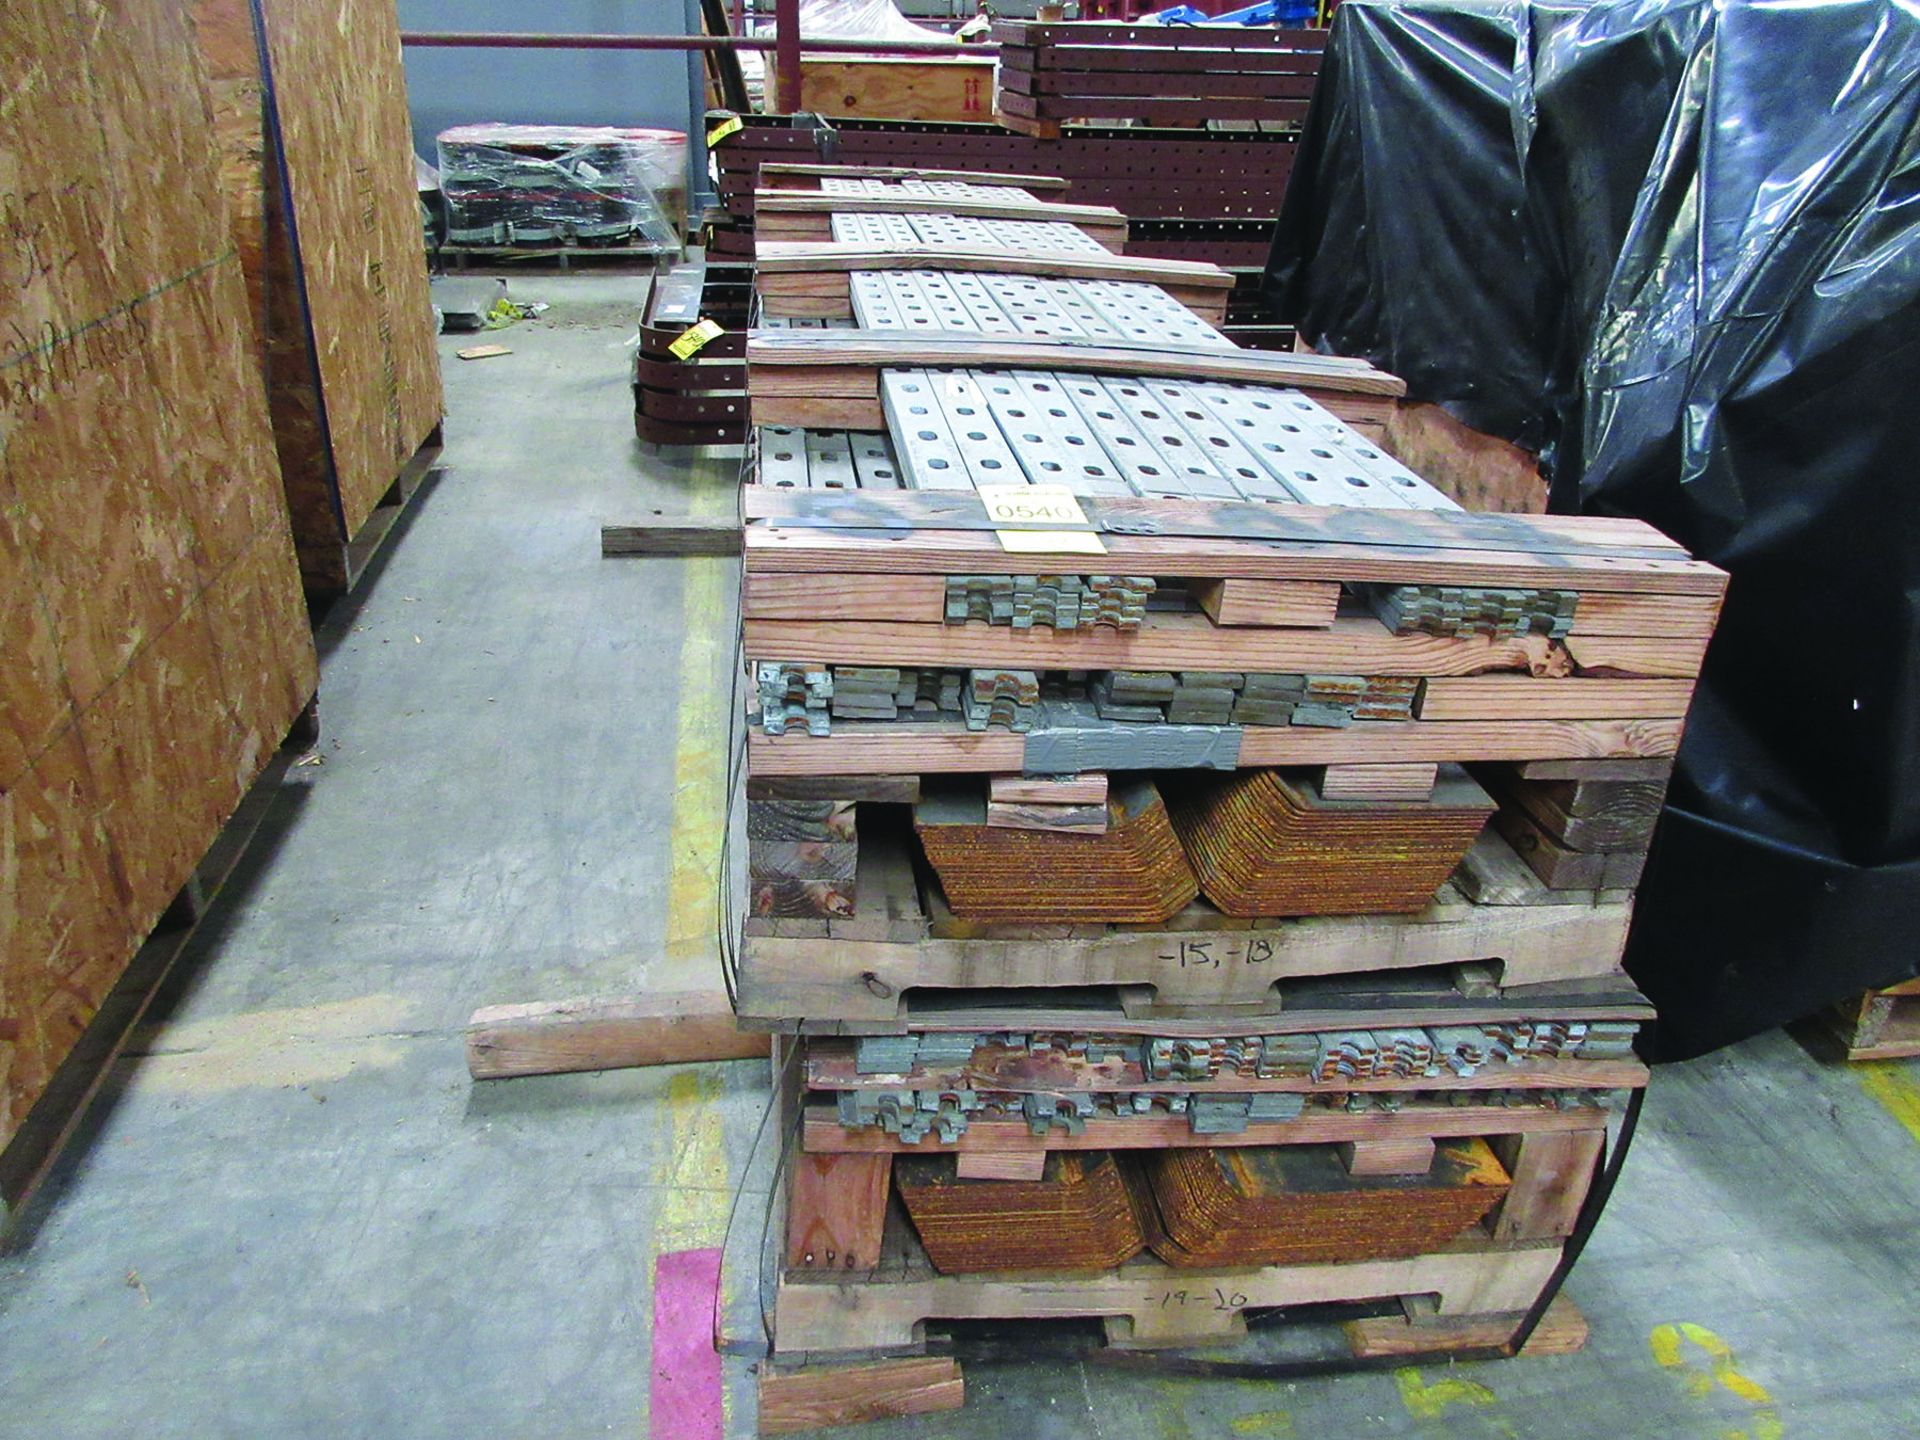 PALLET OF GAS DUCT TO AIR HEATER PRE FAB STEEL, OTHER FAB STEEL, V-BELTS, BELLOWS, GRID G8 - Image 2 of 6